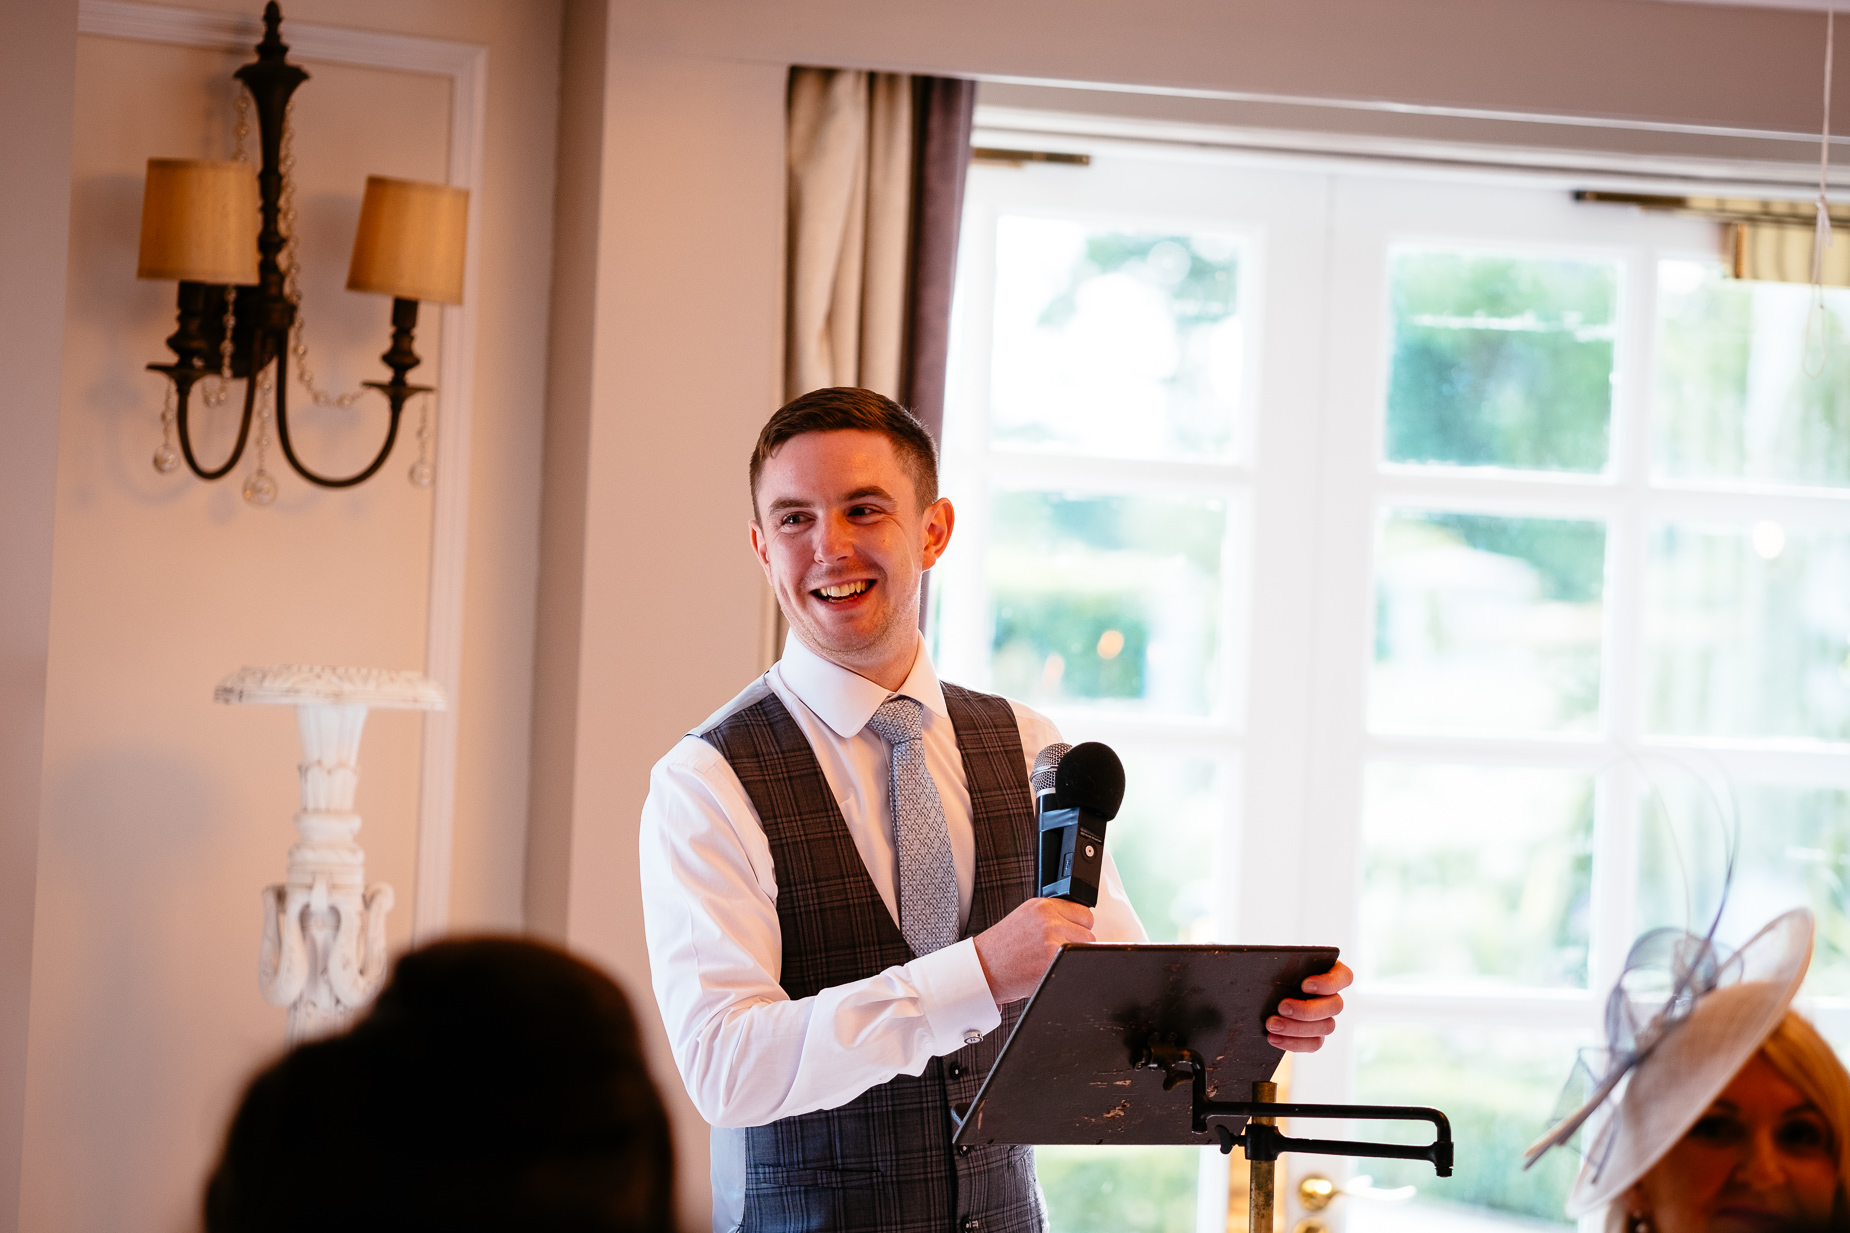 castlebellingham wedding photographer louth 0698